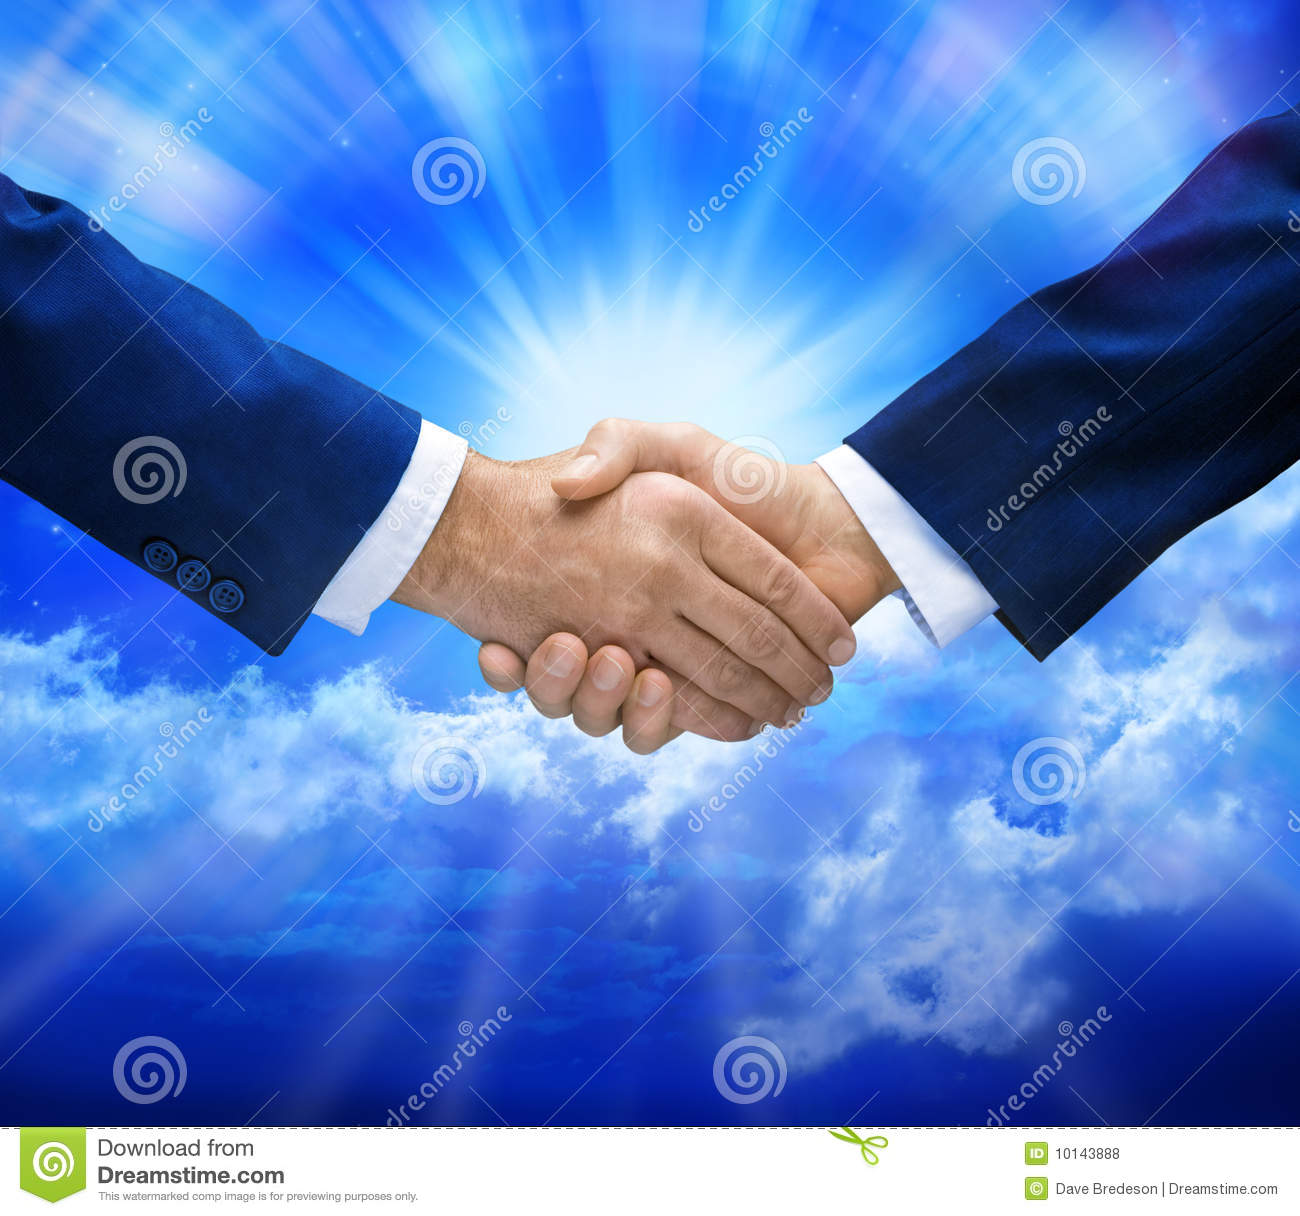 Business people handshake greeting deal at work photo free download - Handshake Deal Sky Business Royalty Free Stock Photos